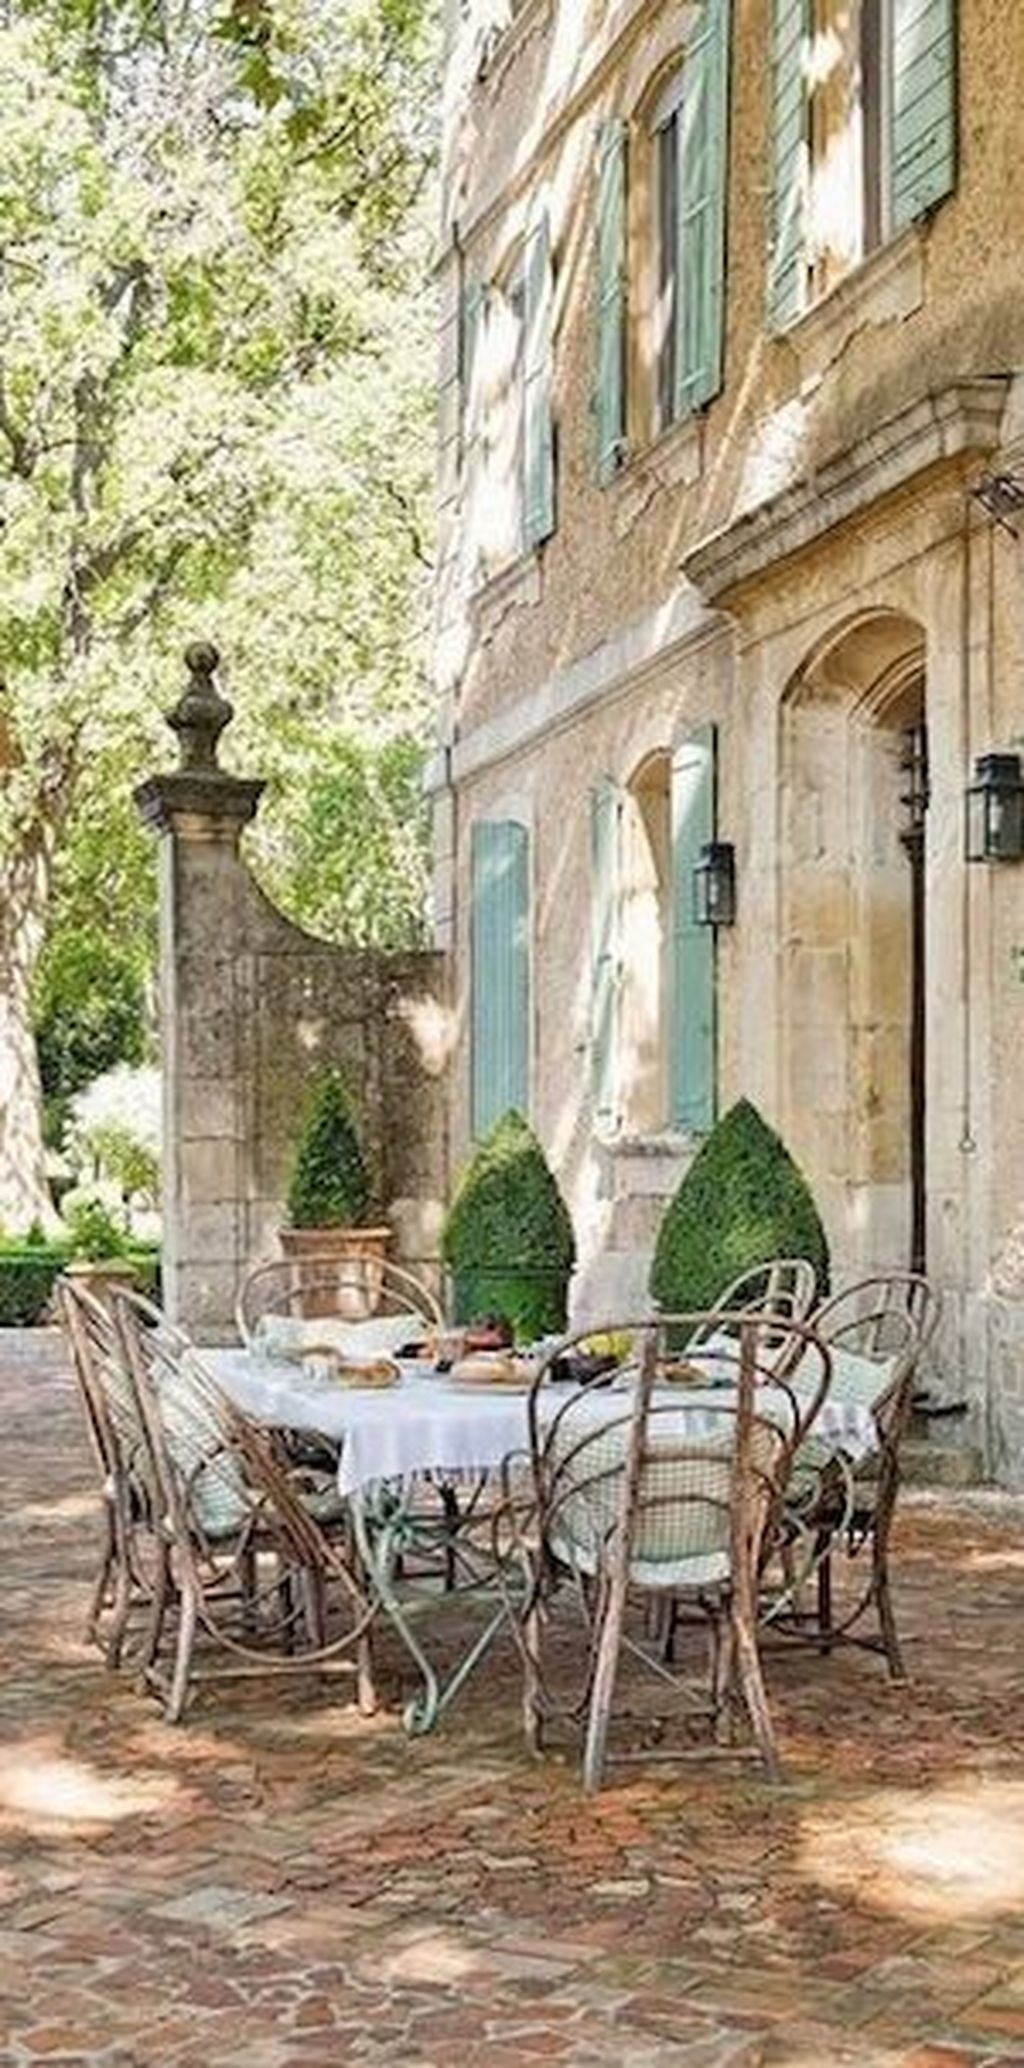 Stylish French Country Exterior For Your Home Design Inspiration 33